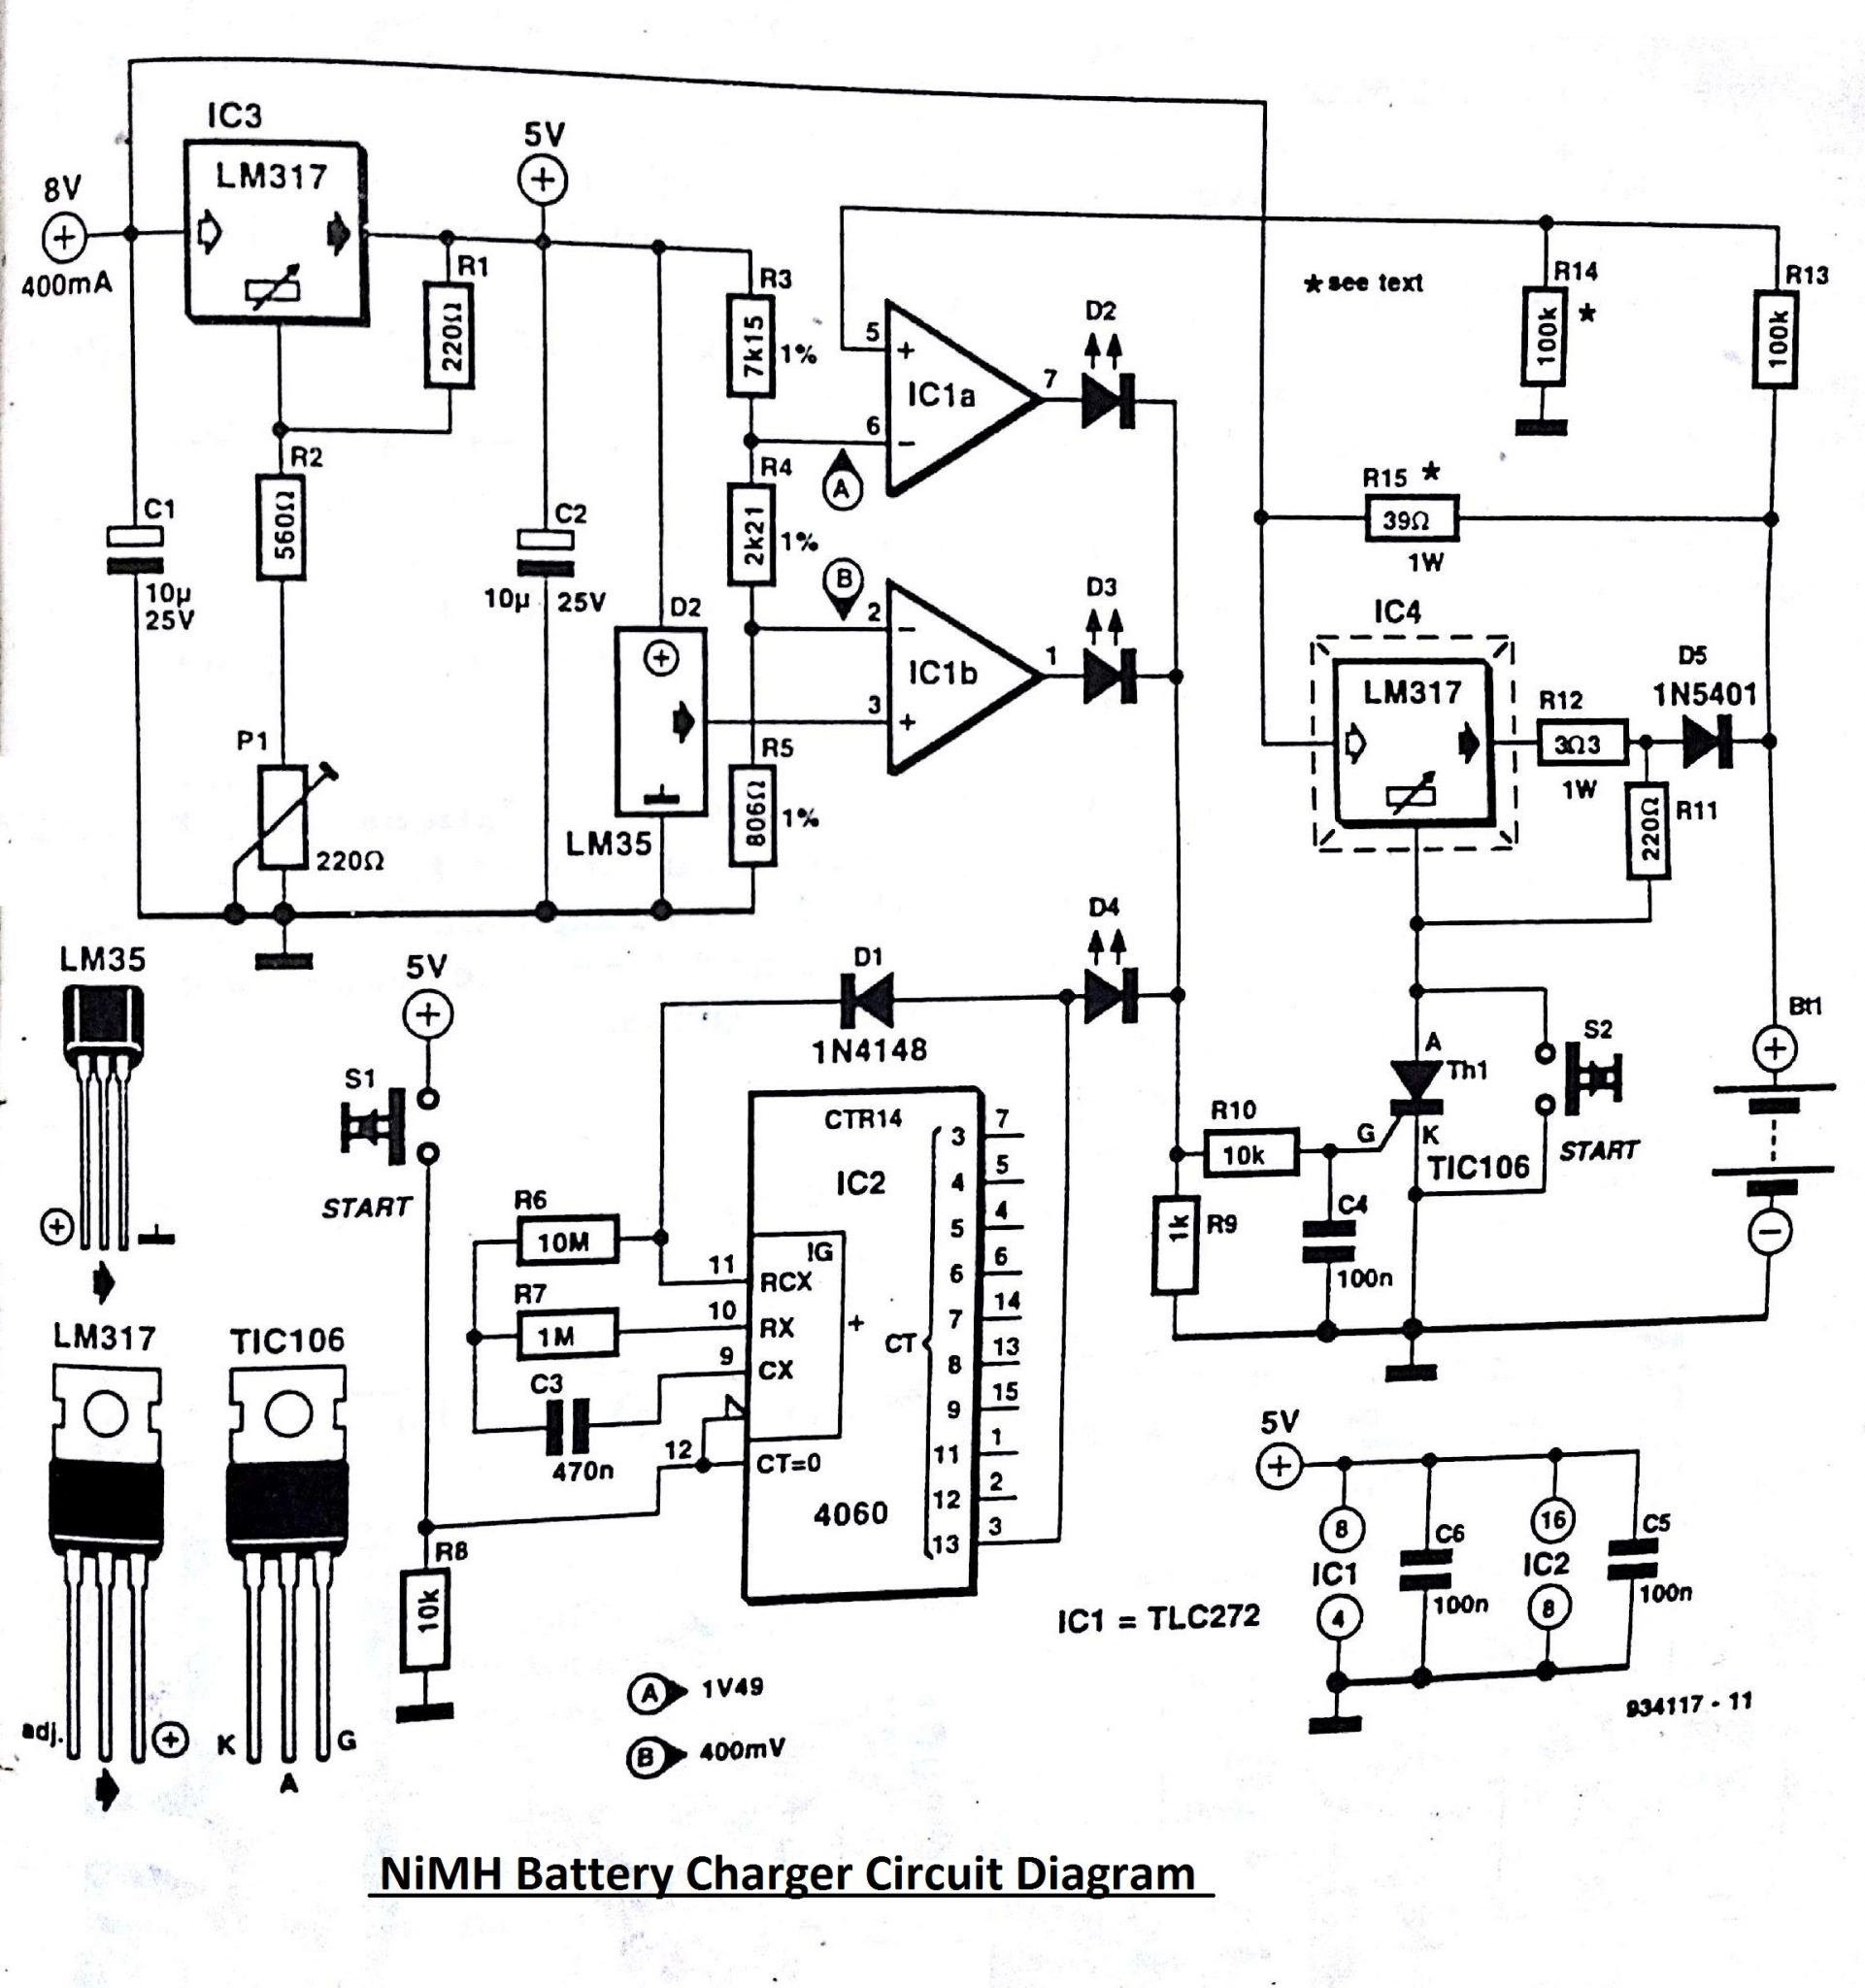 Nimh battery charger circuit diagram nimh battery charger circuit diagram ccuart